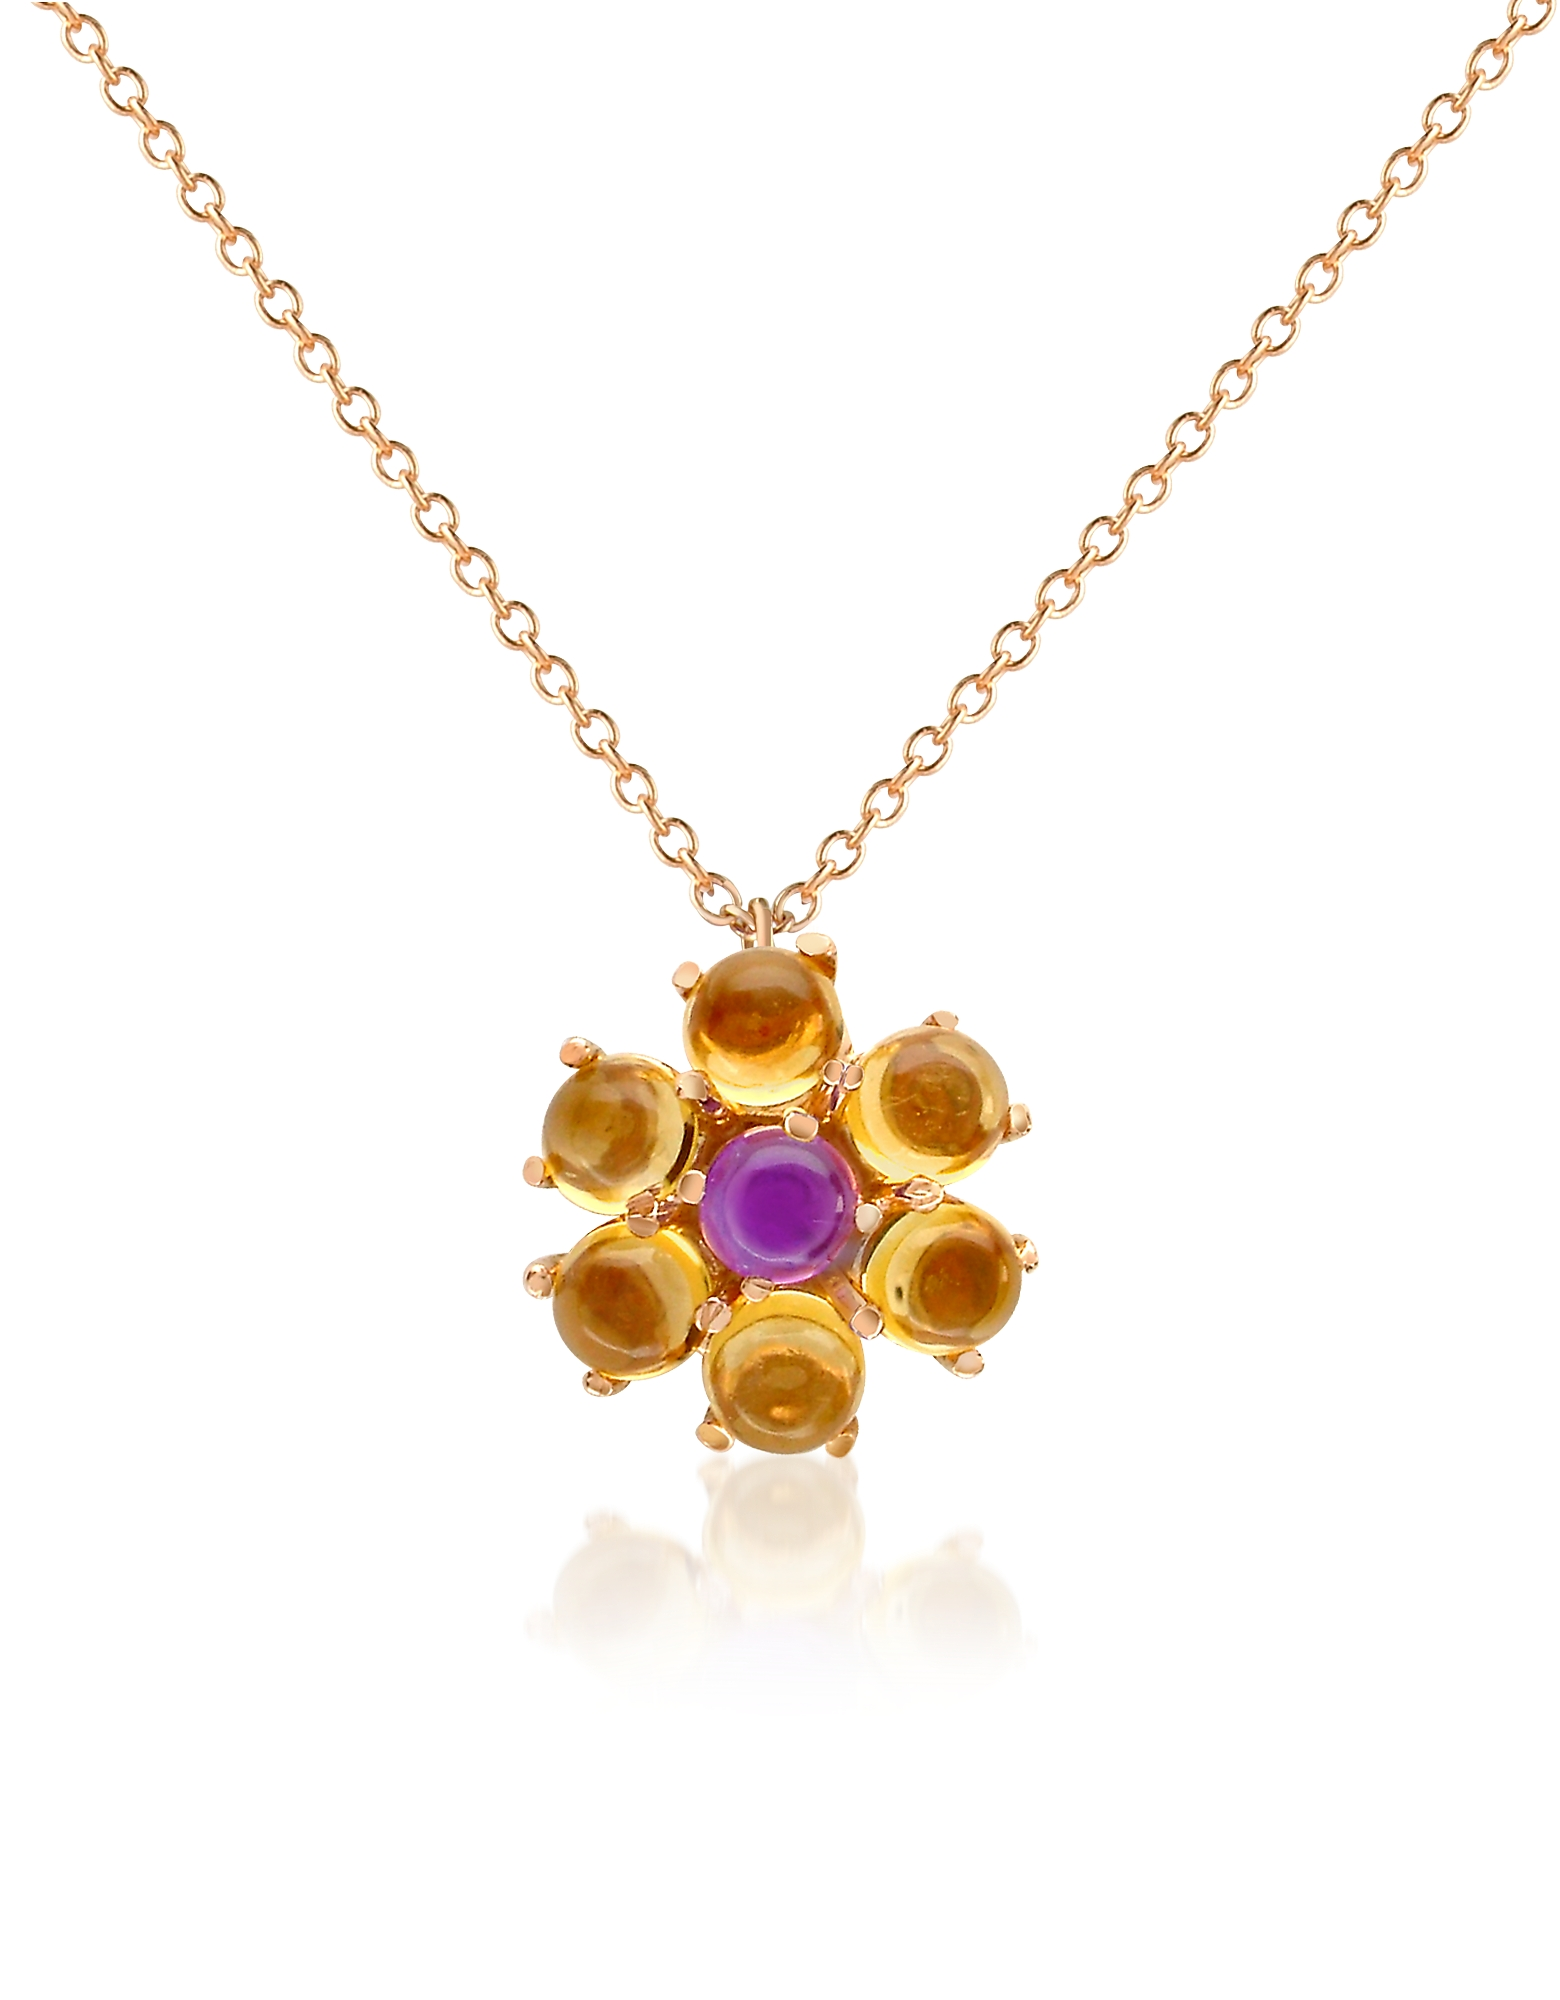 Forzieri Necklaces, Amethyst and Citrine Flower 18K Gold Pendant Necklace